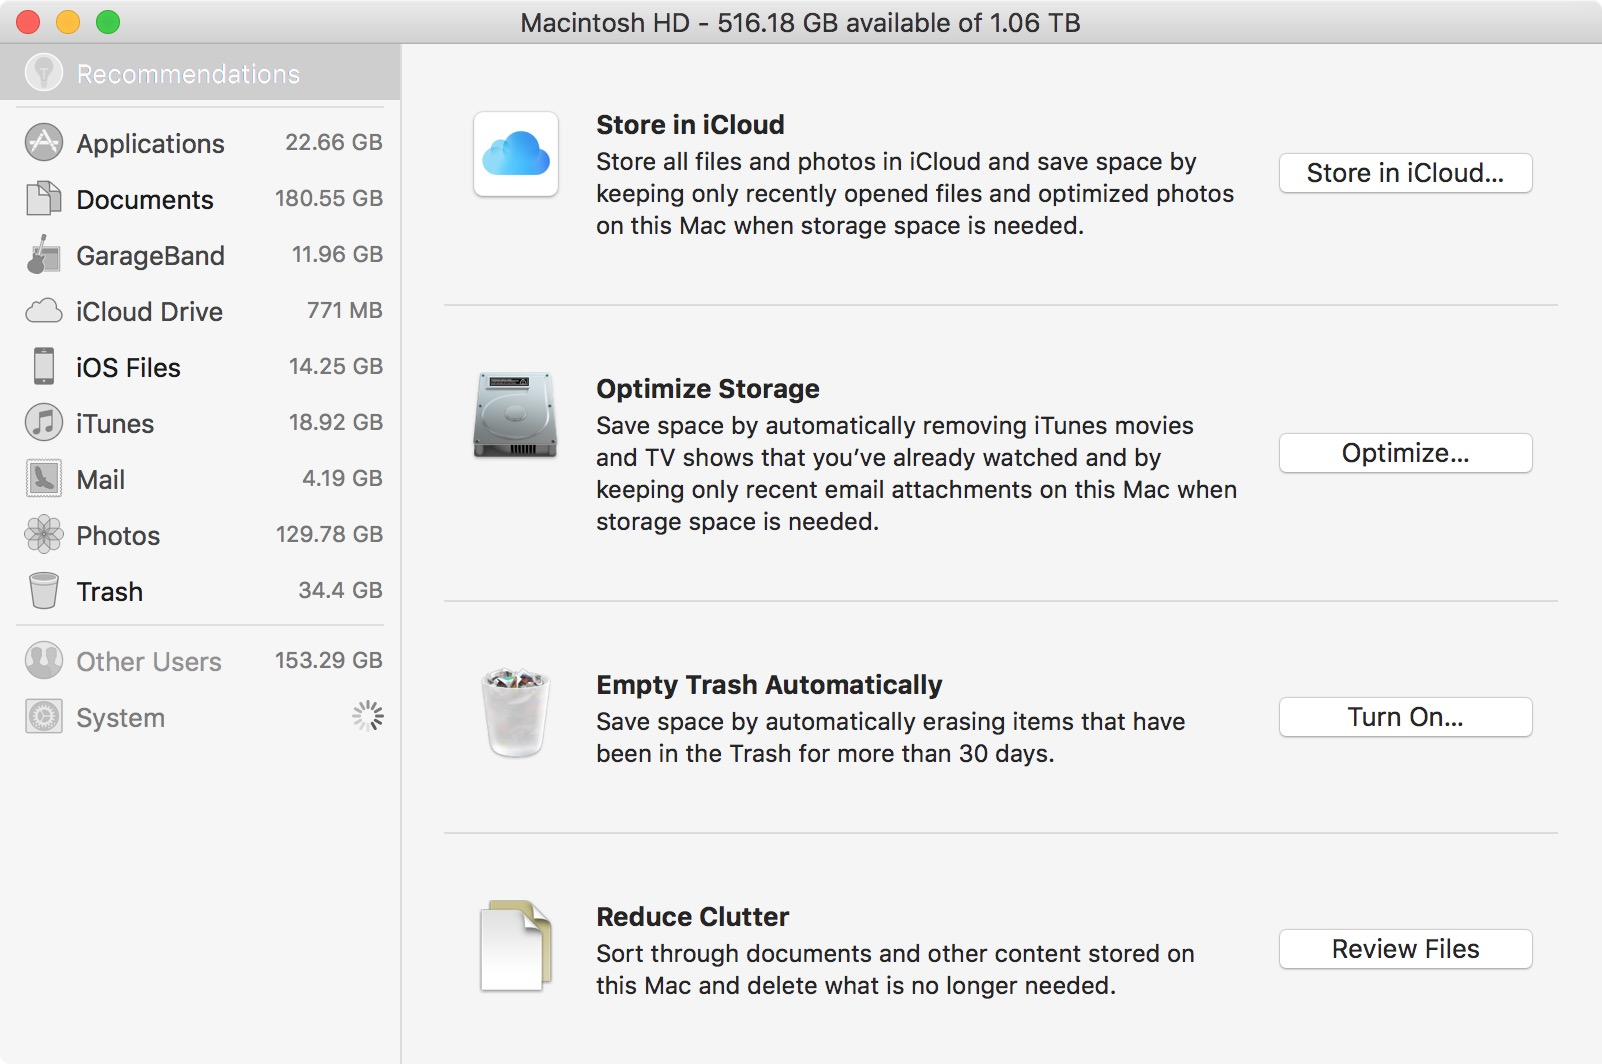 optimized-storage-mac